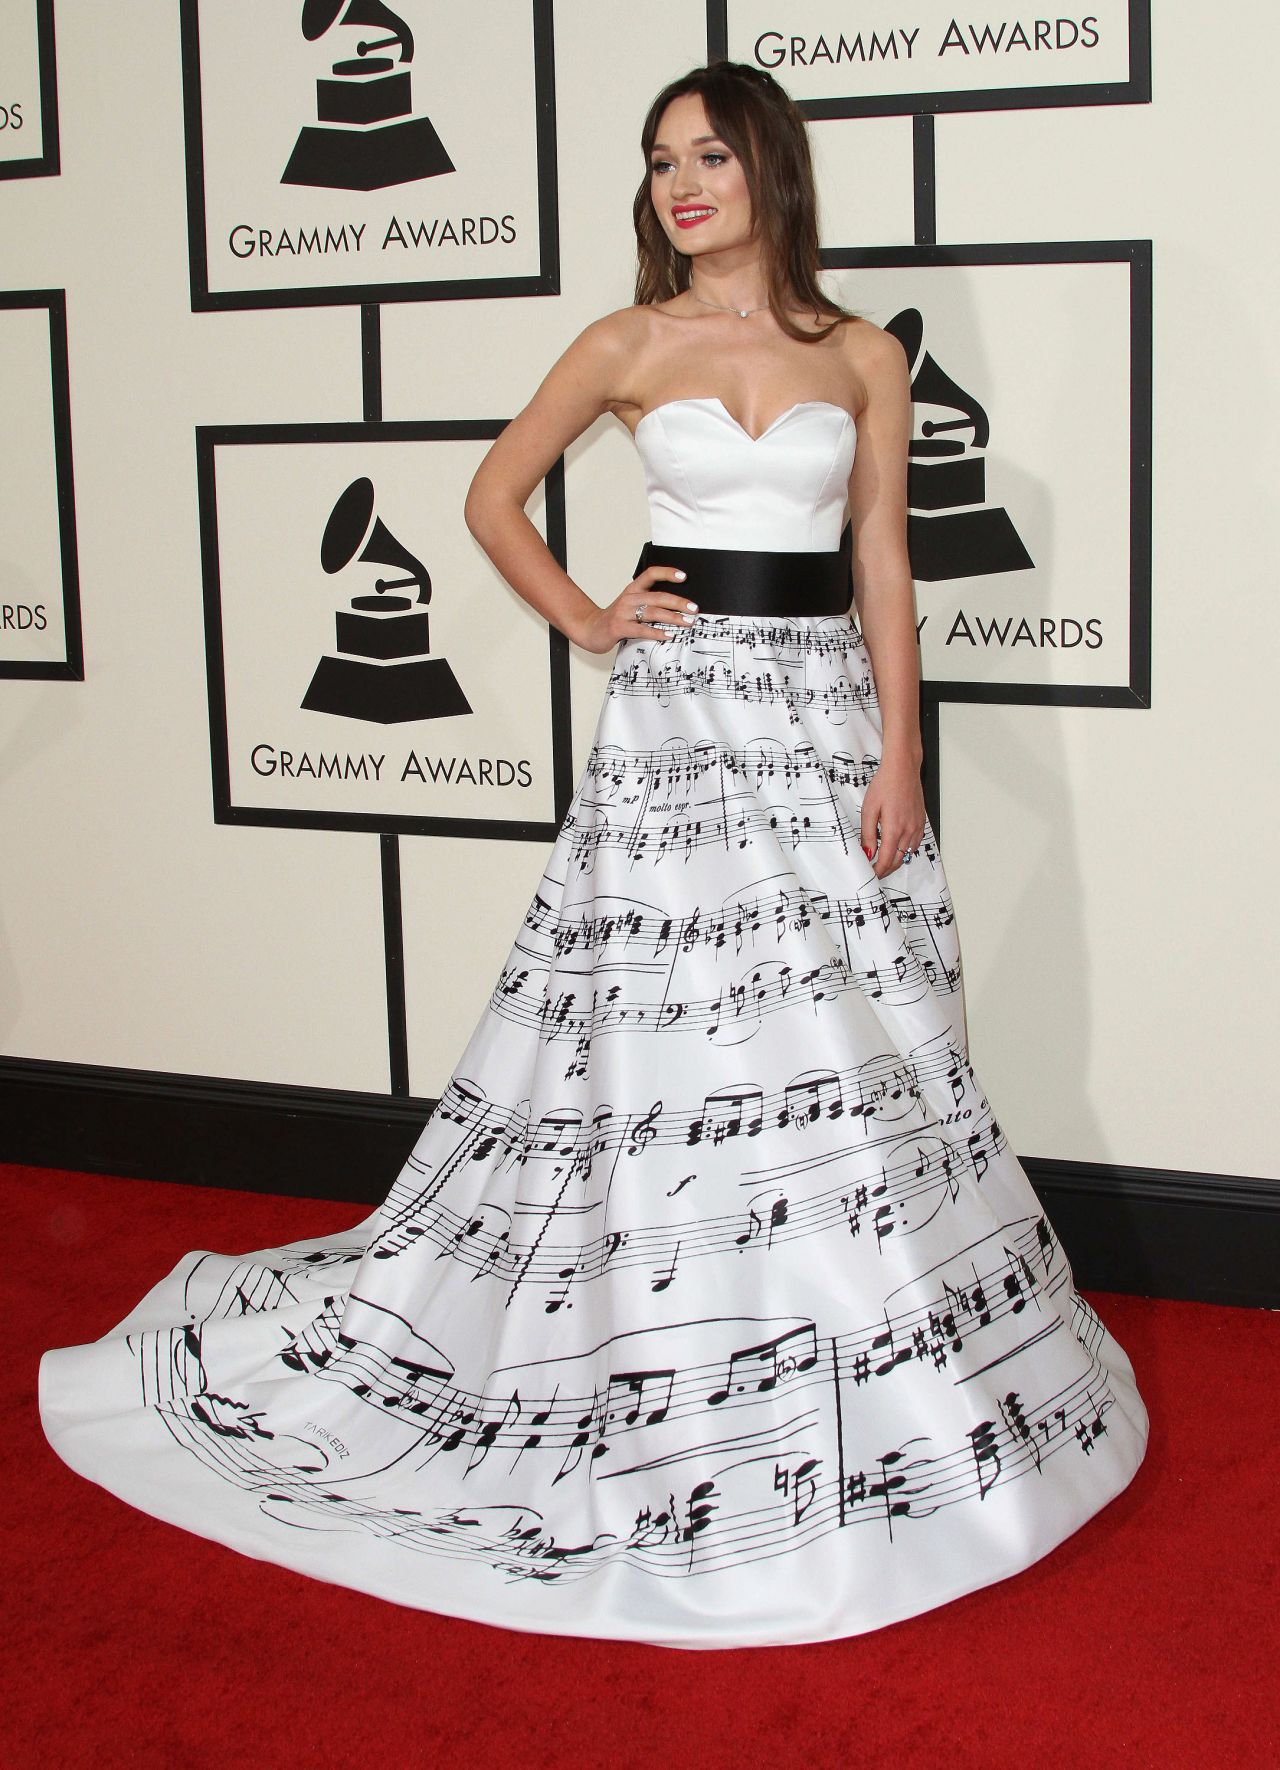 diana-gloster-2016-grammy-awards-in-los-angeles-ca-1